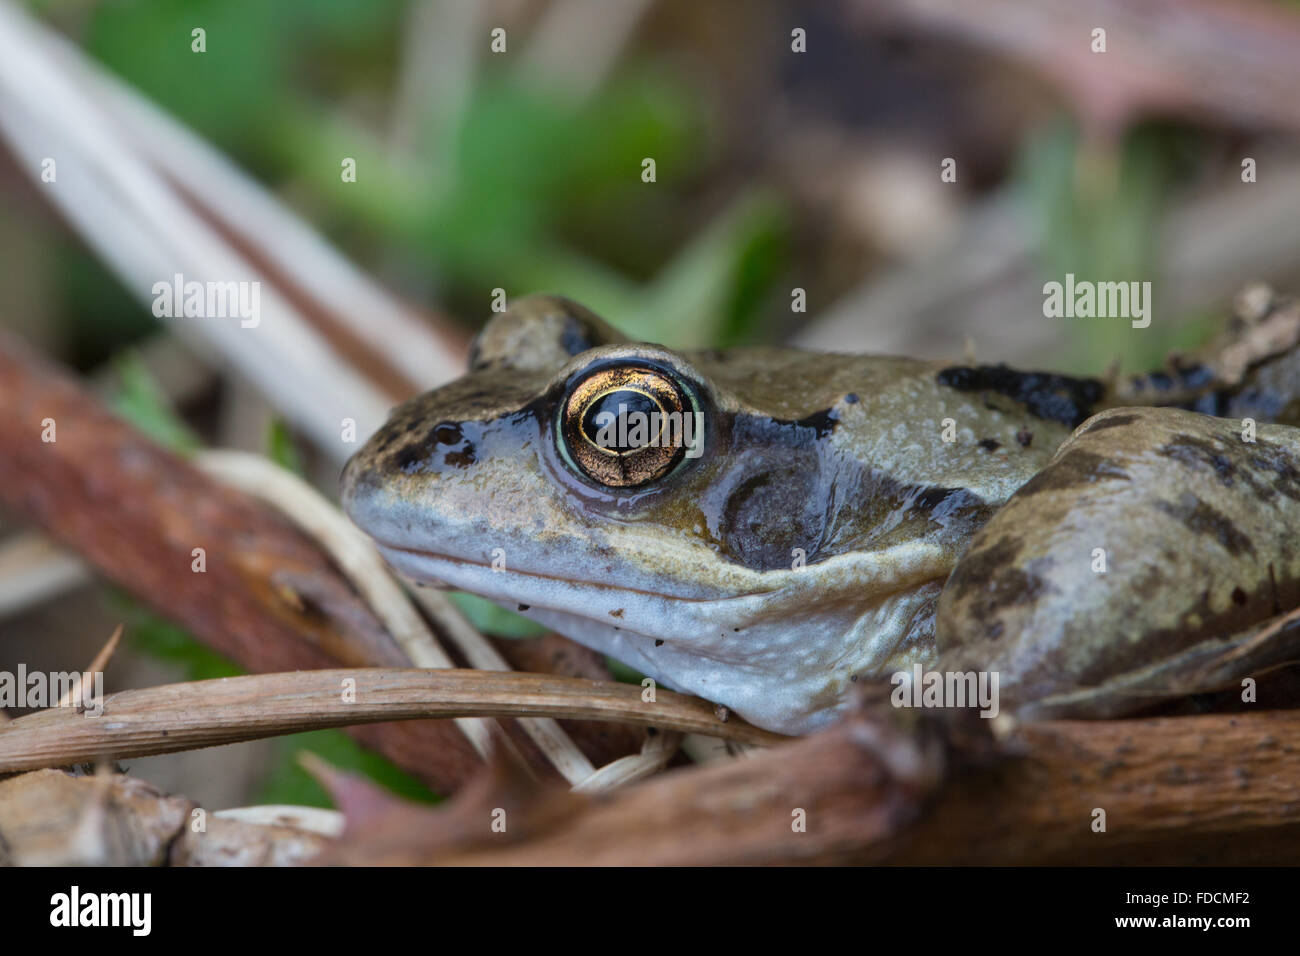 Close up of a common frog - Stock Image